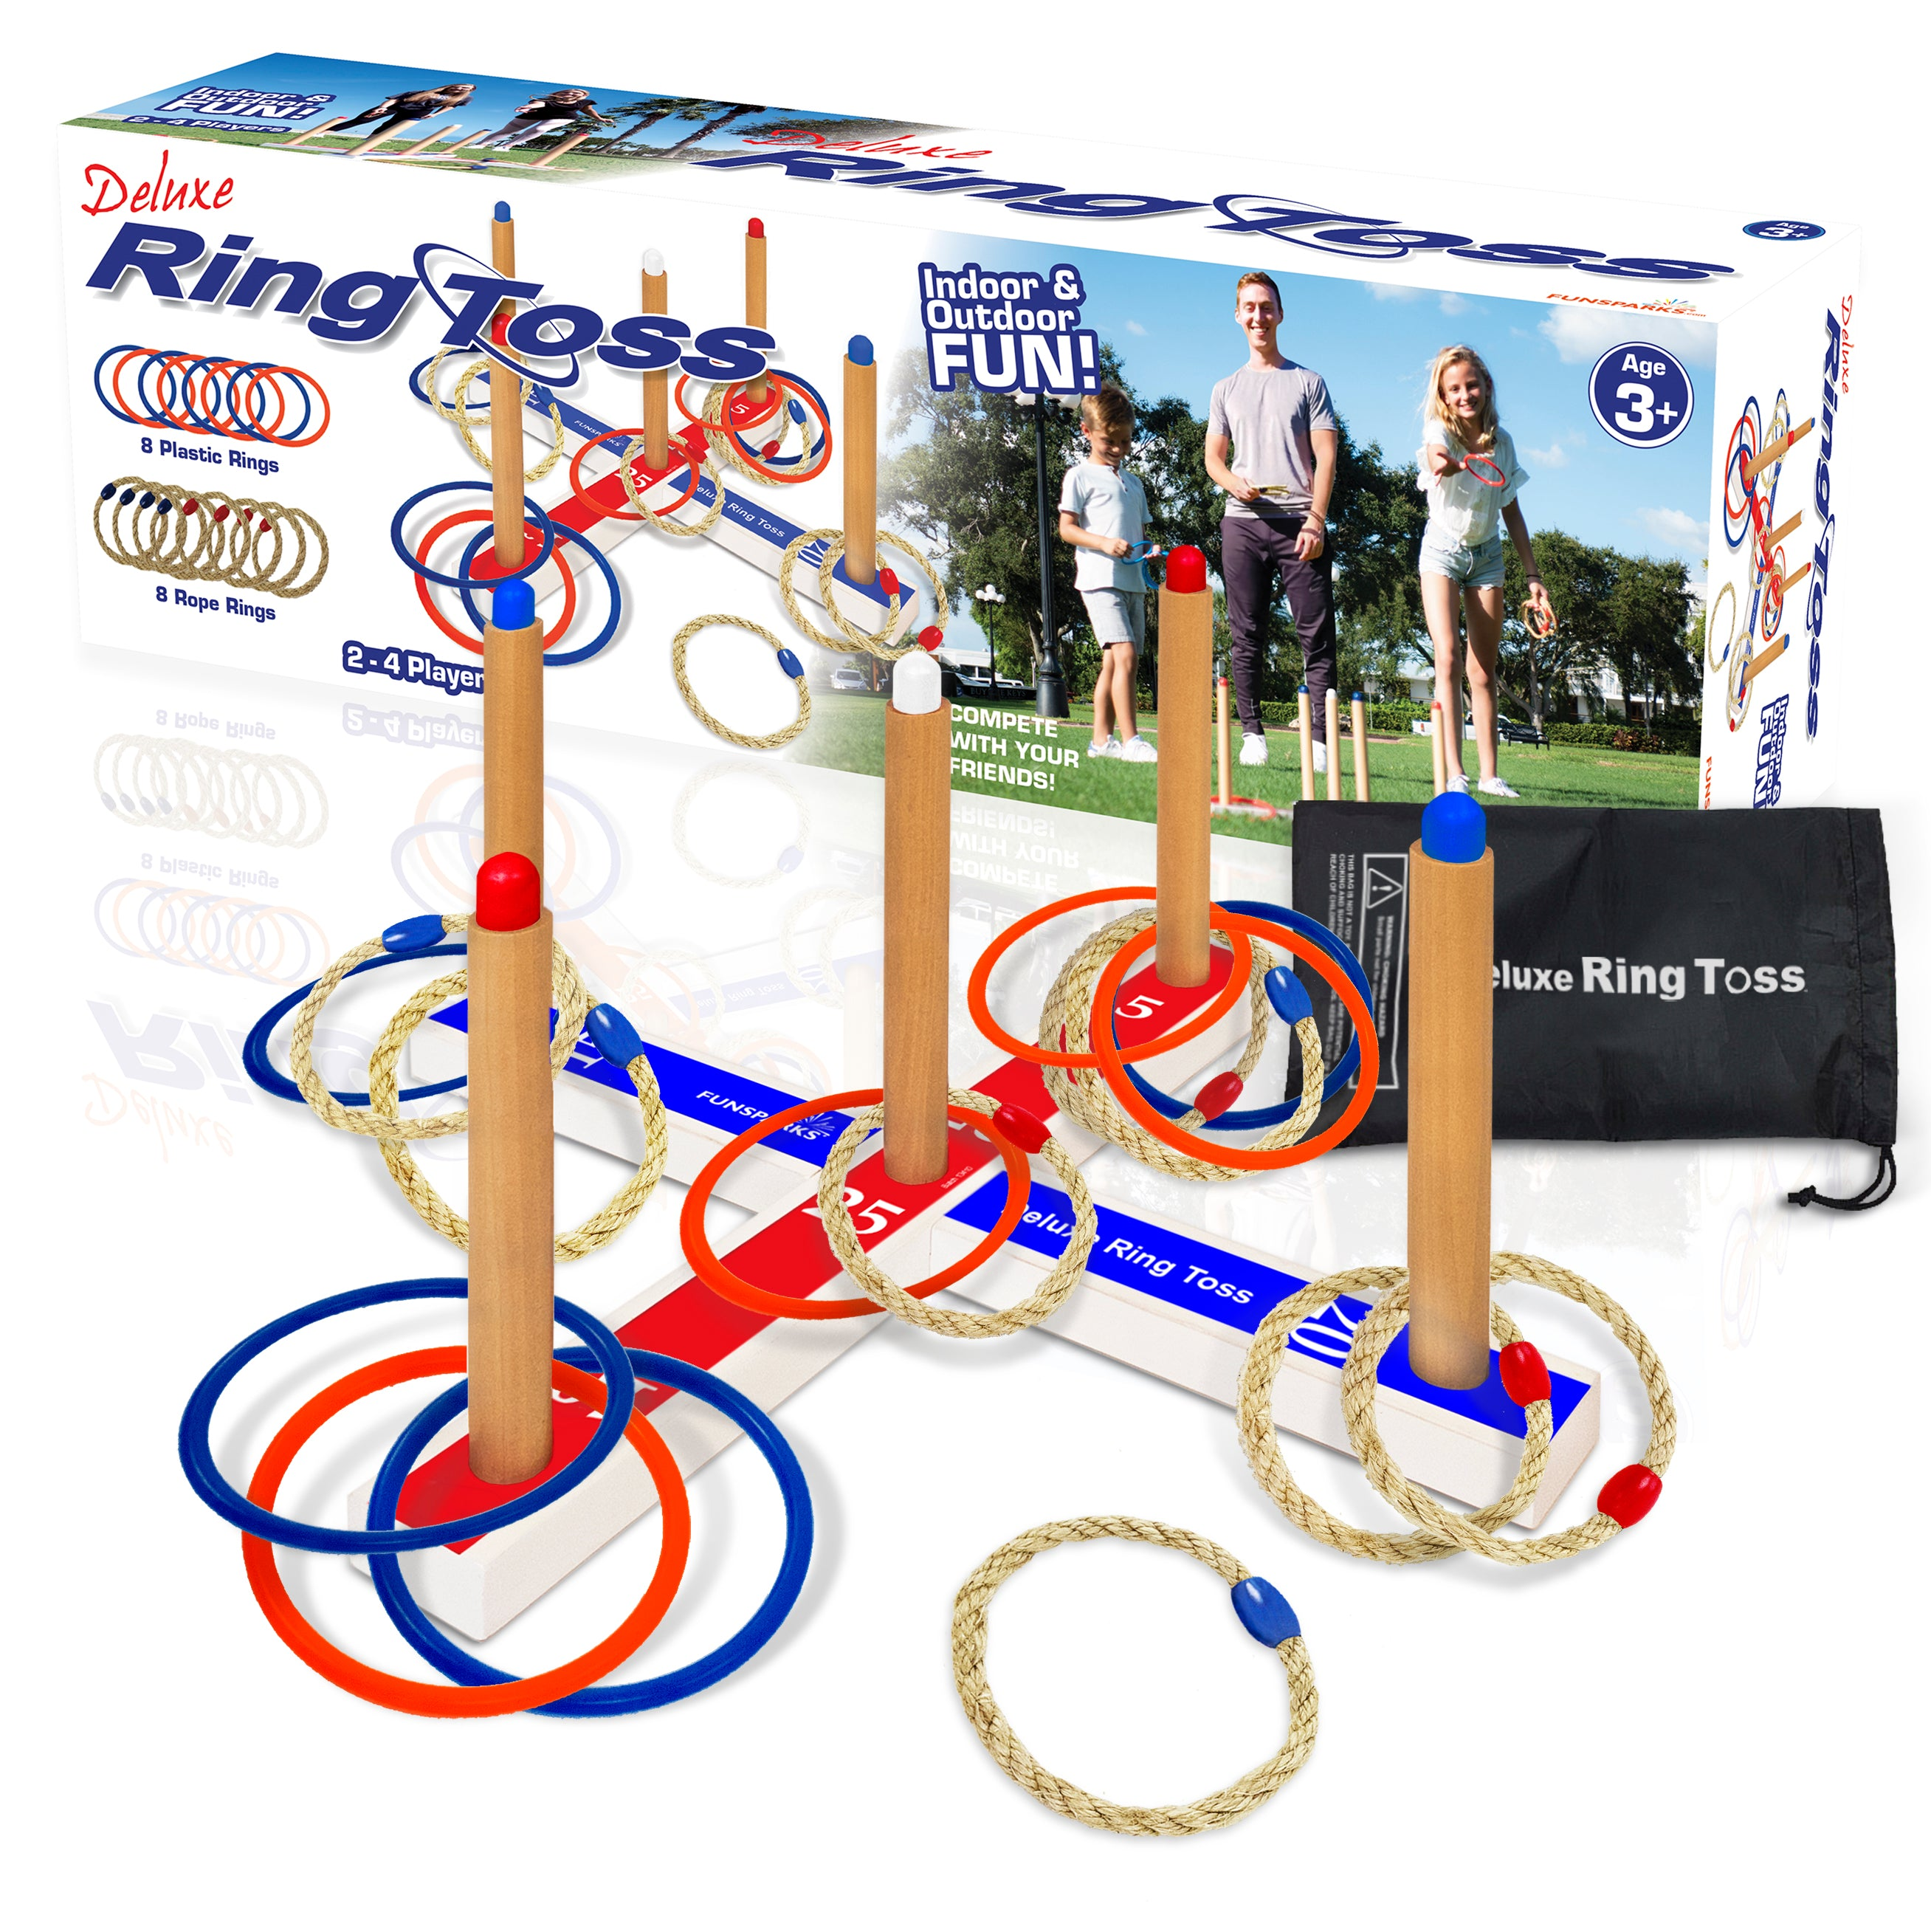 Ring Toss Game Deluxe